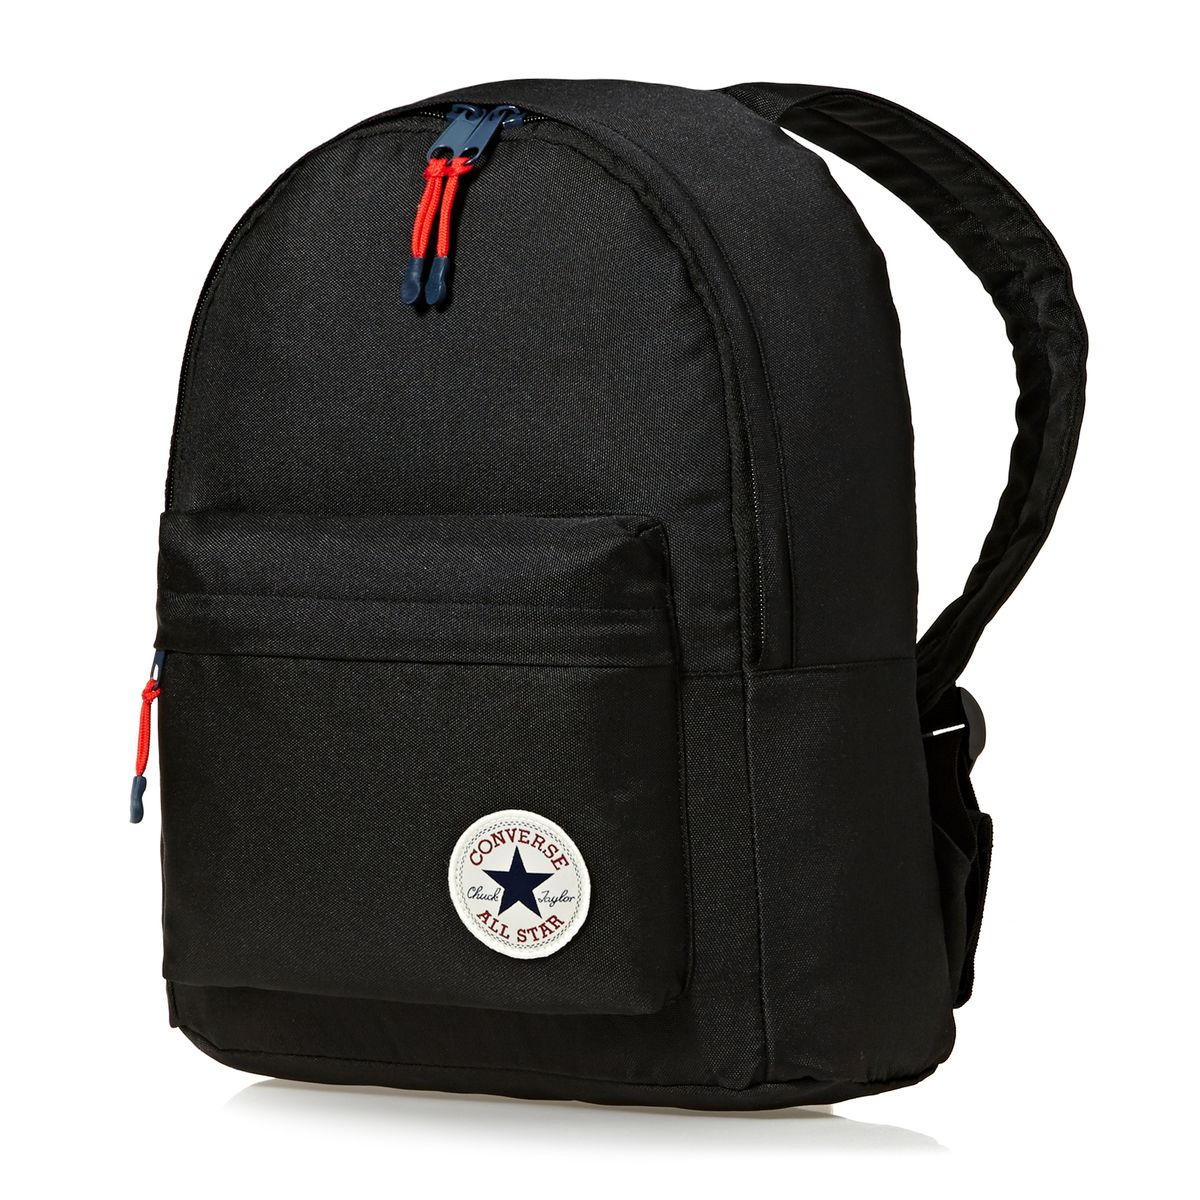 converse-backpacks-converse-converse-day-pack-backpack-black